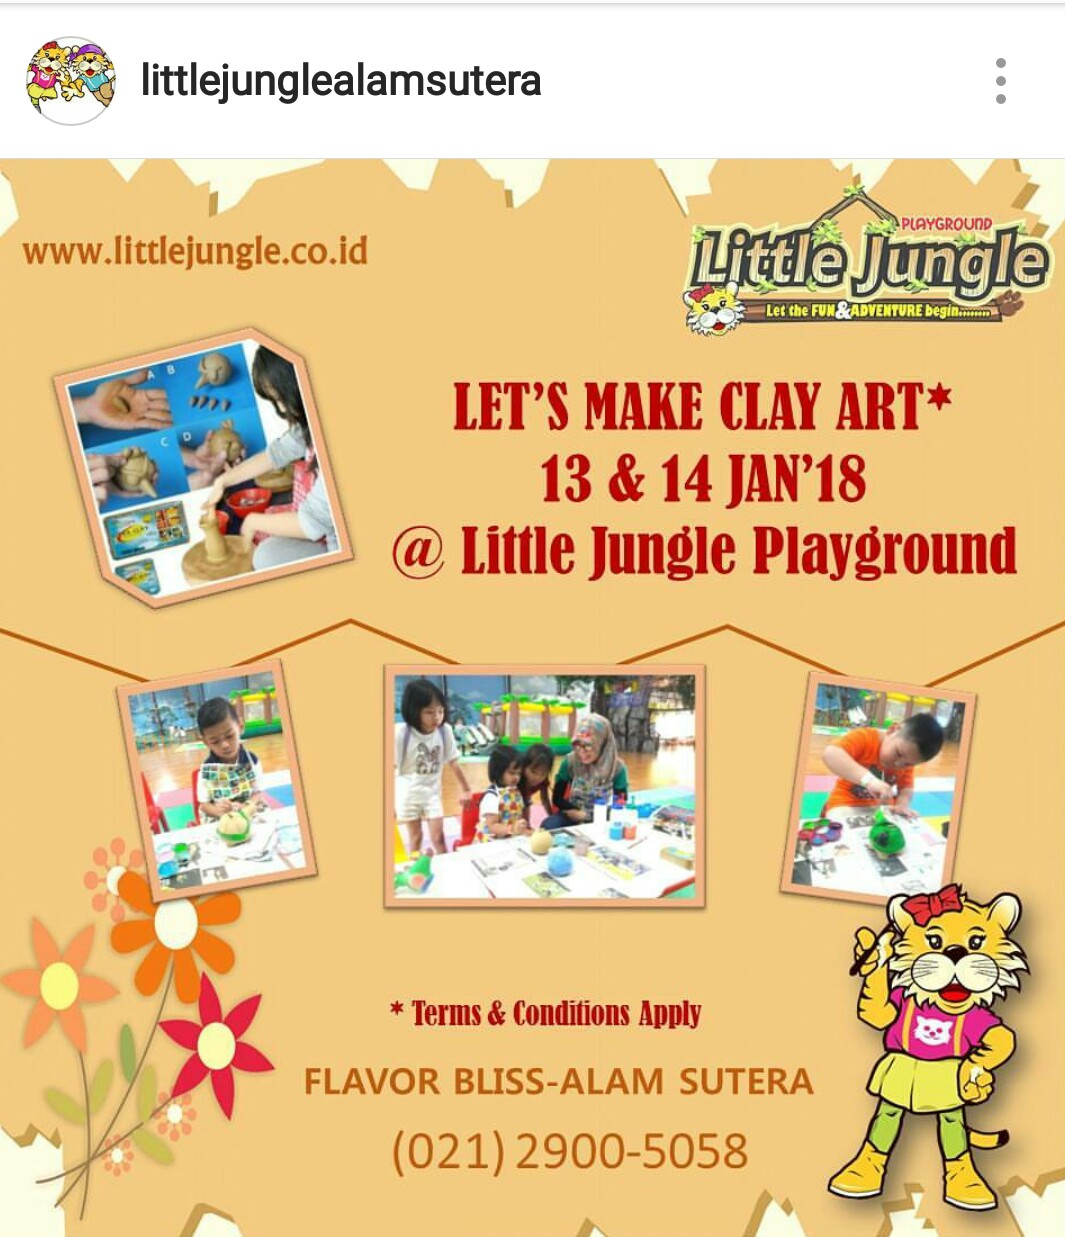 letsmakeclayart_liburananak_littlejungle